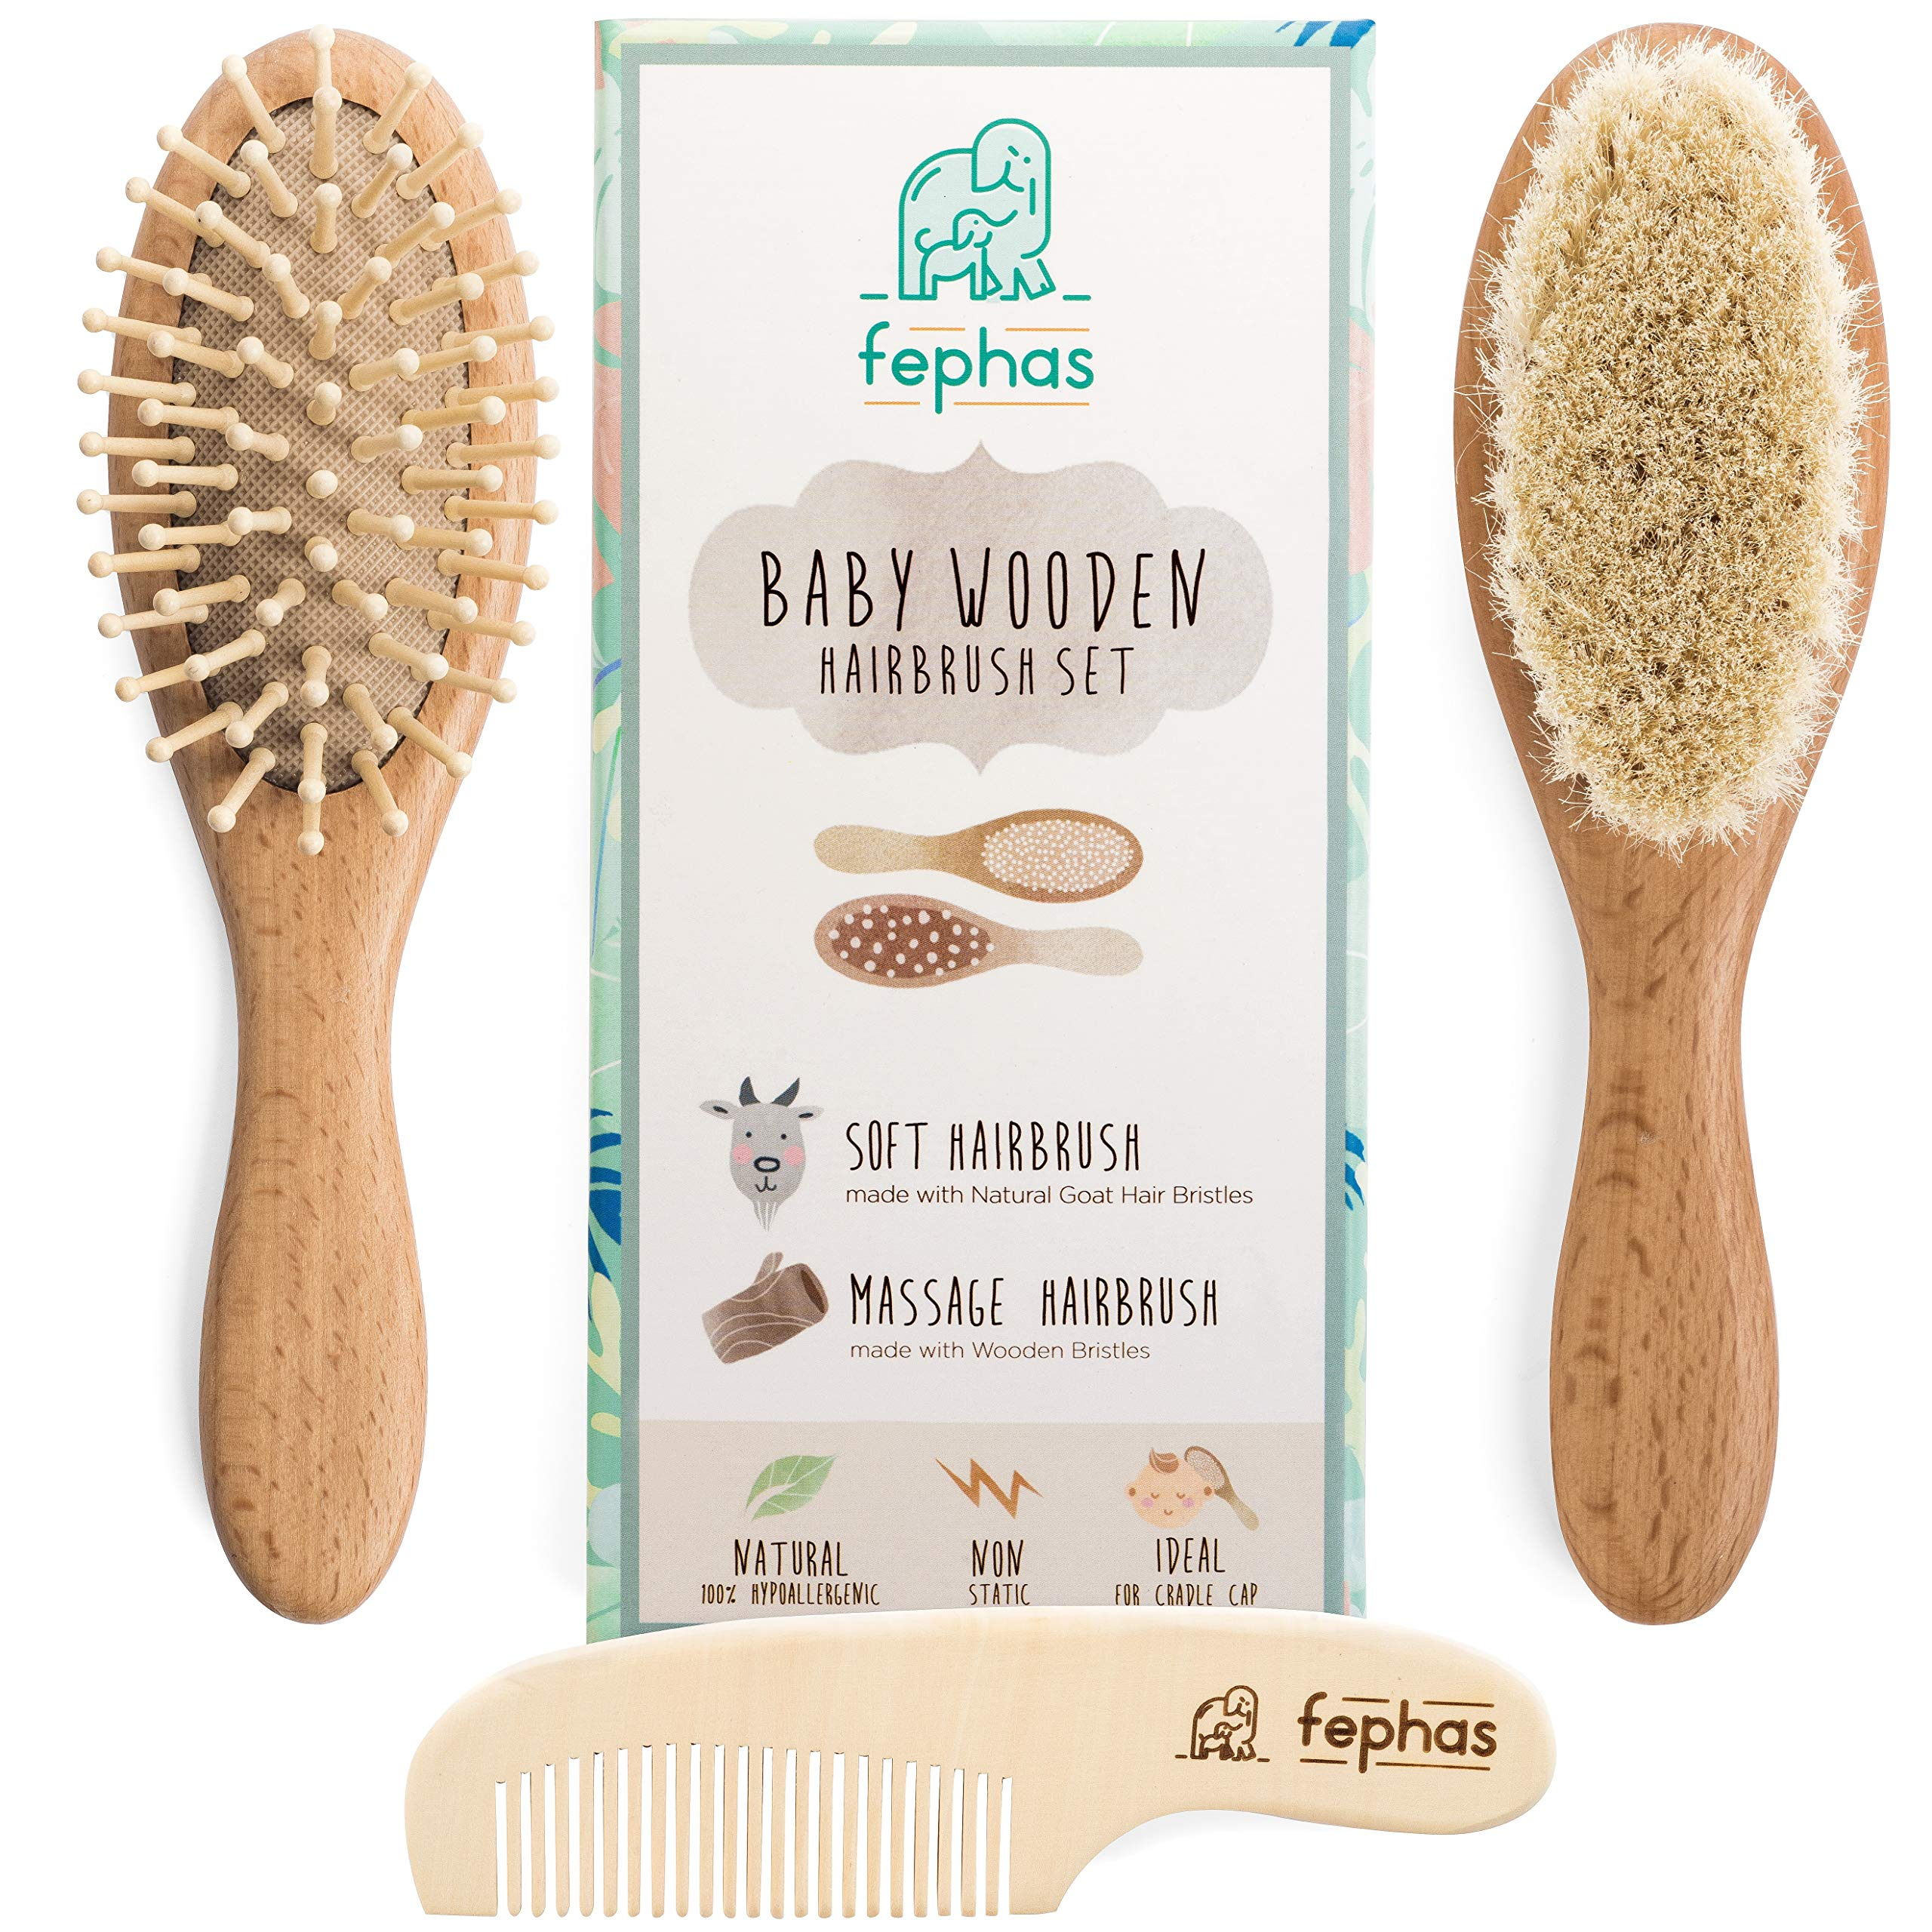 Wooden Baby Hair Brush and Comb Set for Newborns and Toddlers Girl/Boy | Natural Soft Goat Bristles Hairbrush Ideal for Cradle Cap | Wood Bristles Baby Brush | Perfect Baby Shower and Registry Gift by fephas